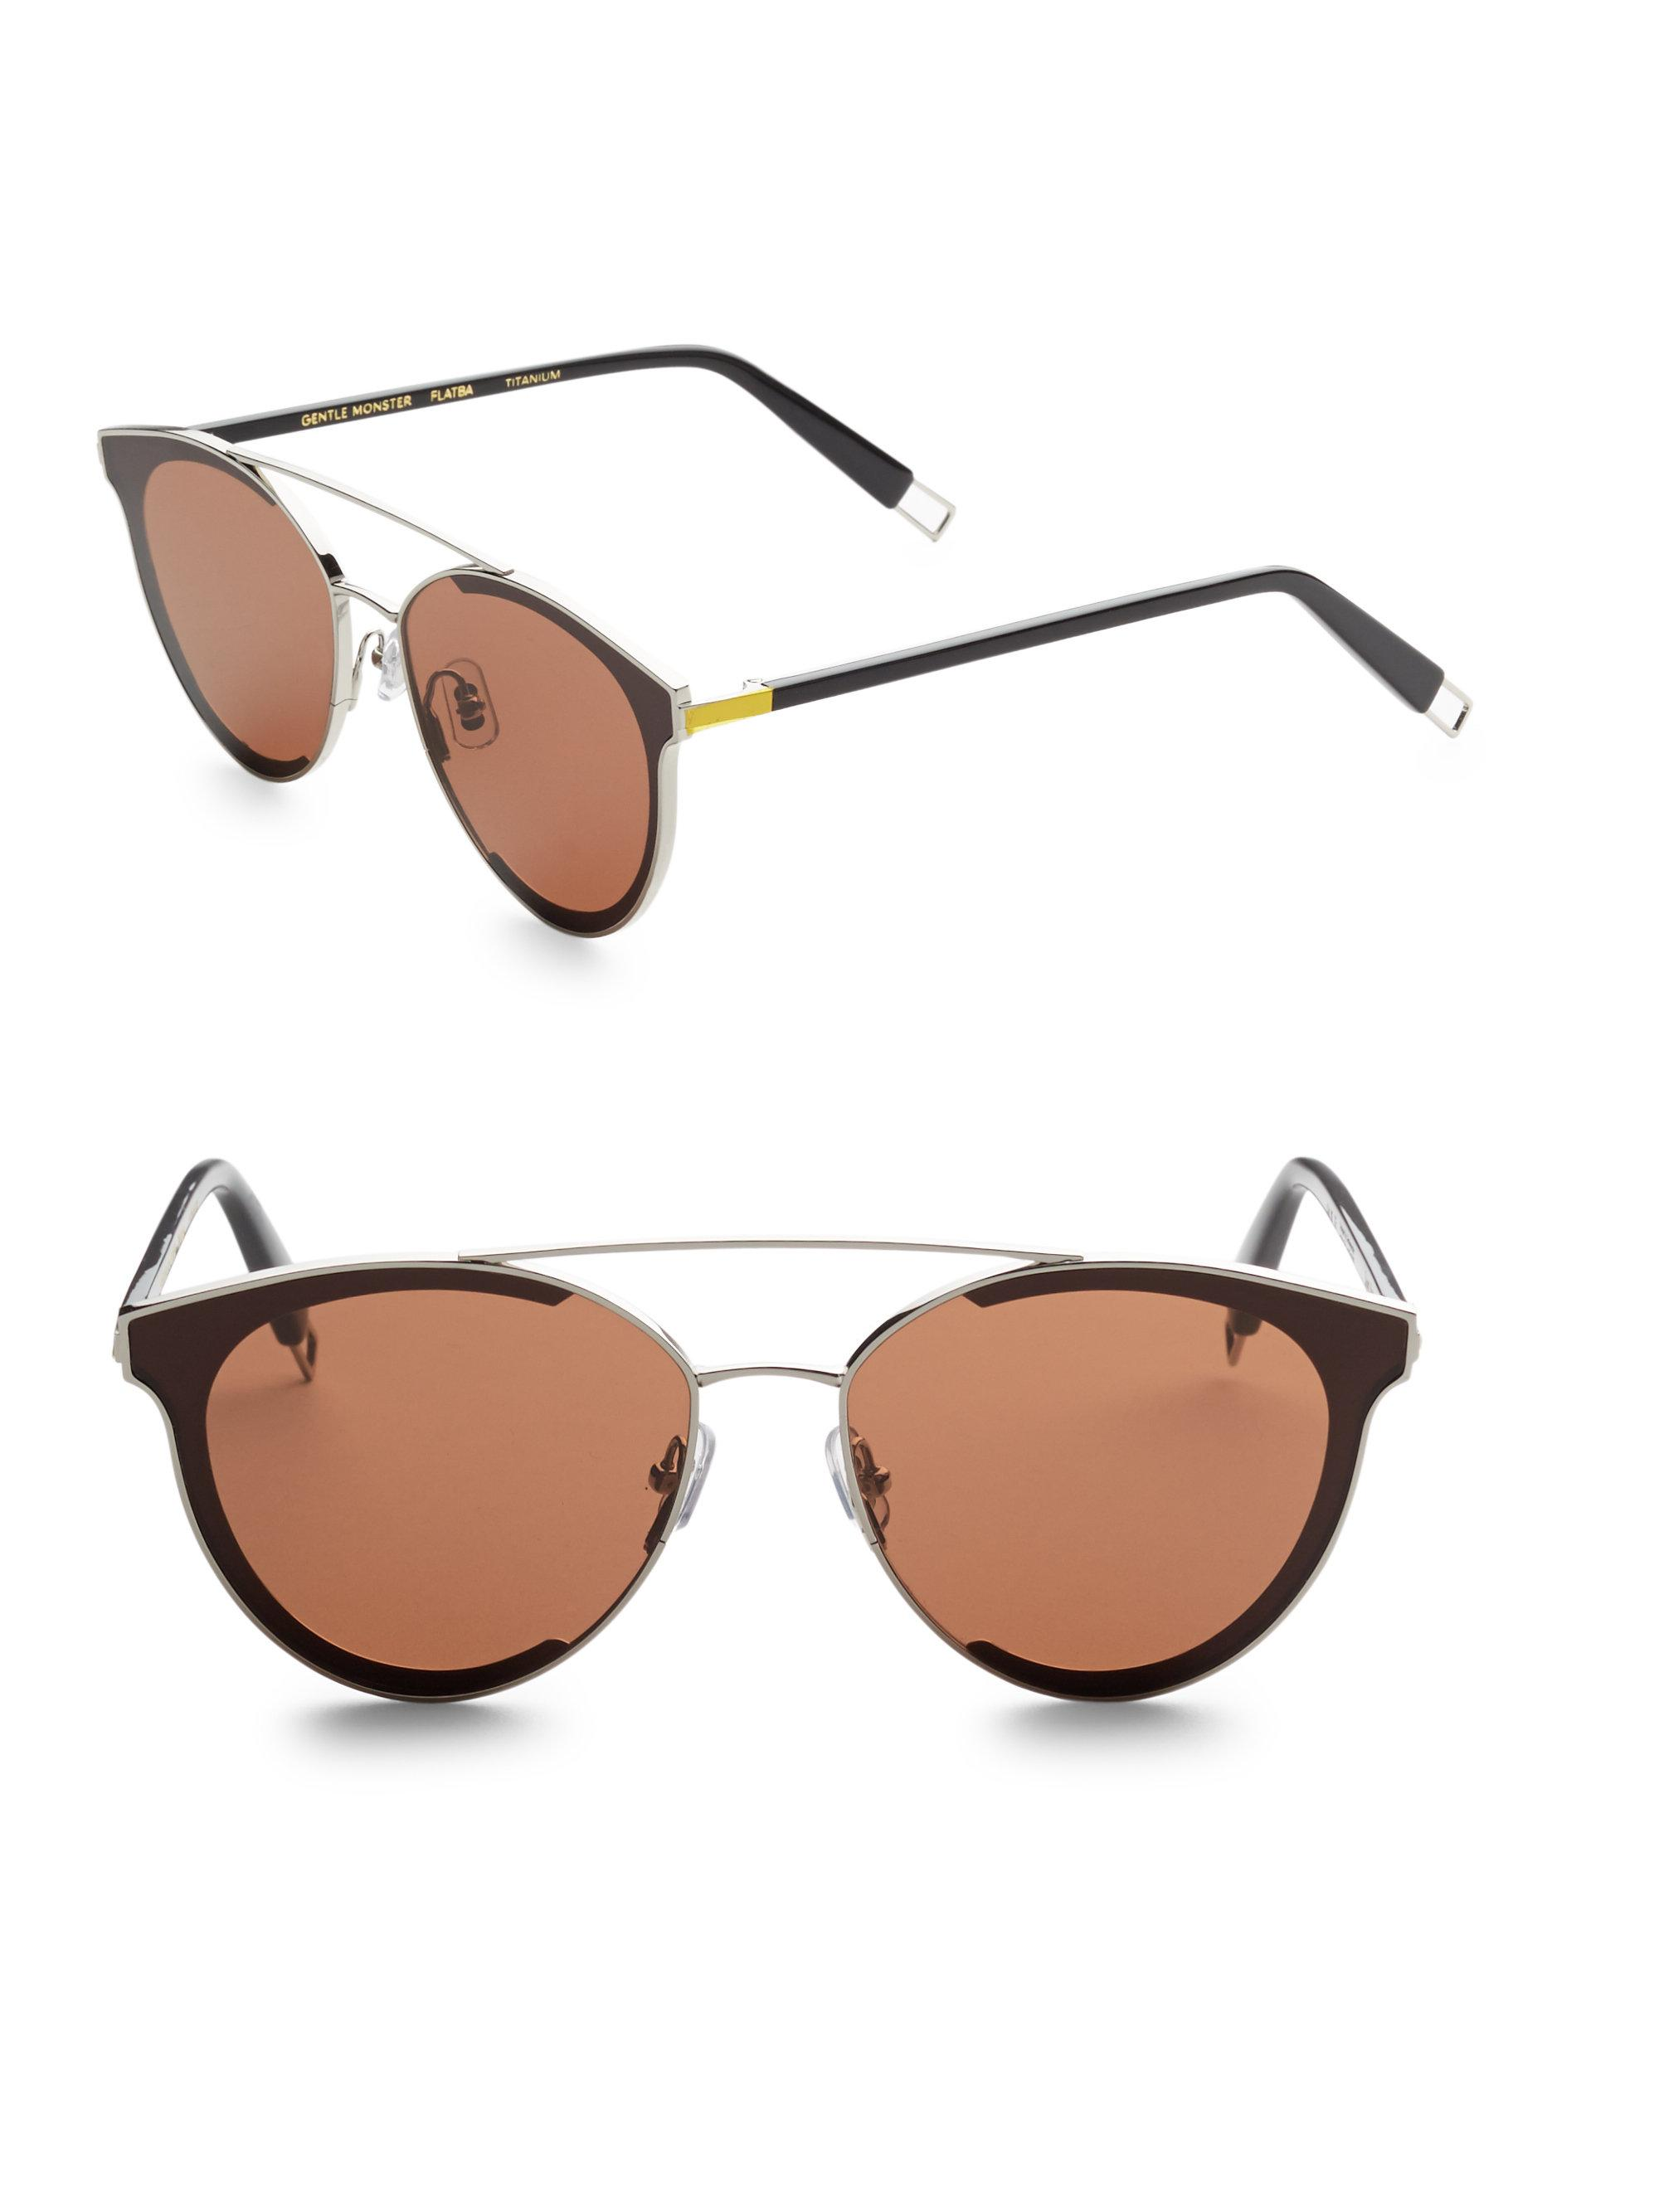 844802a8ba6b Lyst - Gentle Monster Last Bow Aviator Sunglasses in Brown for Men